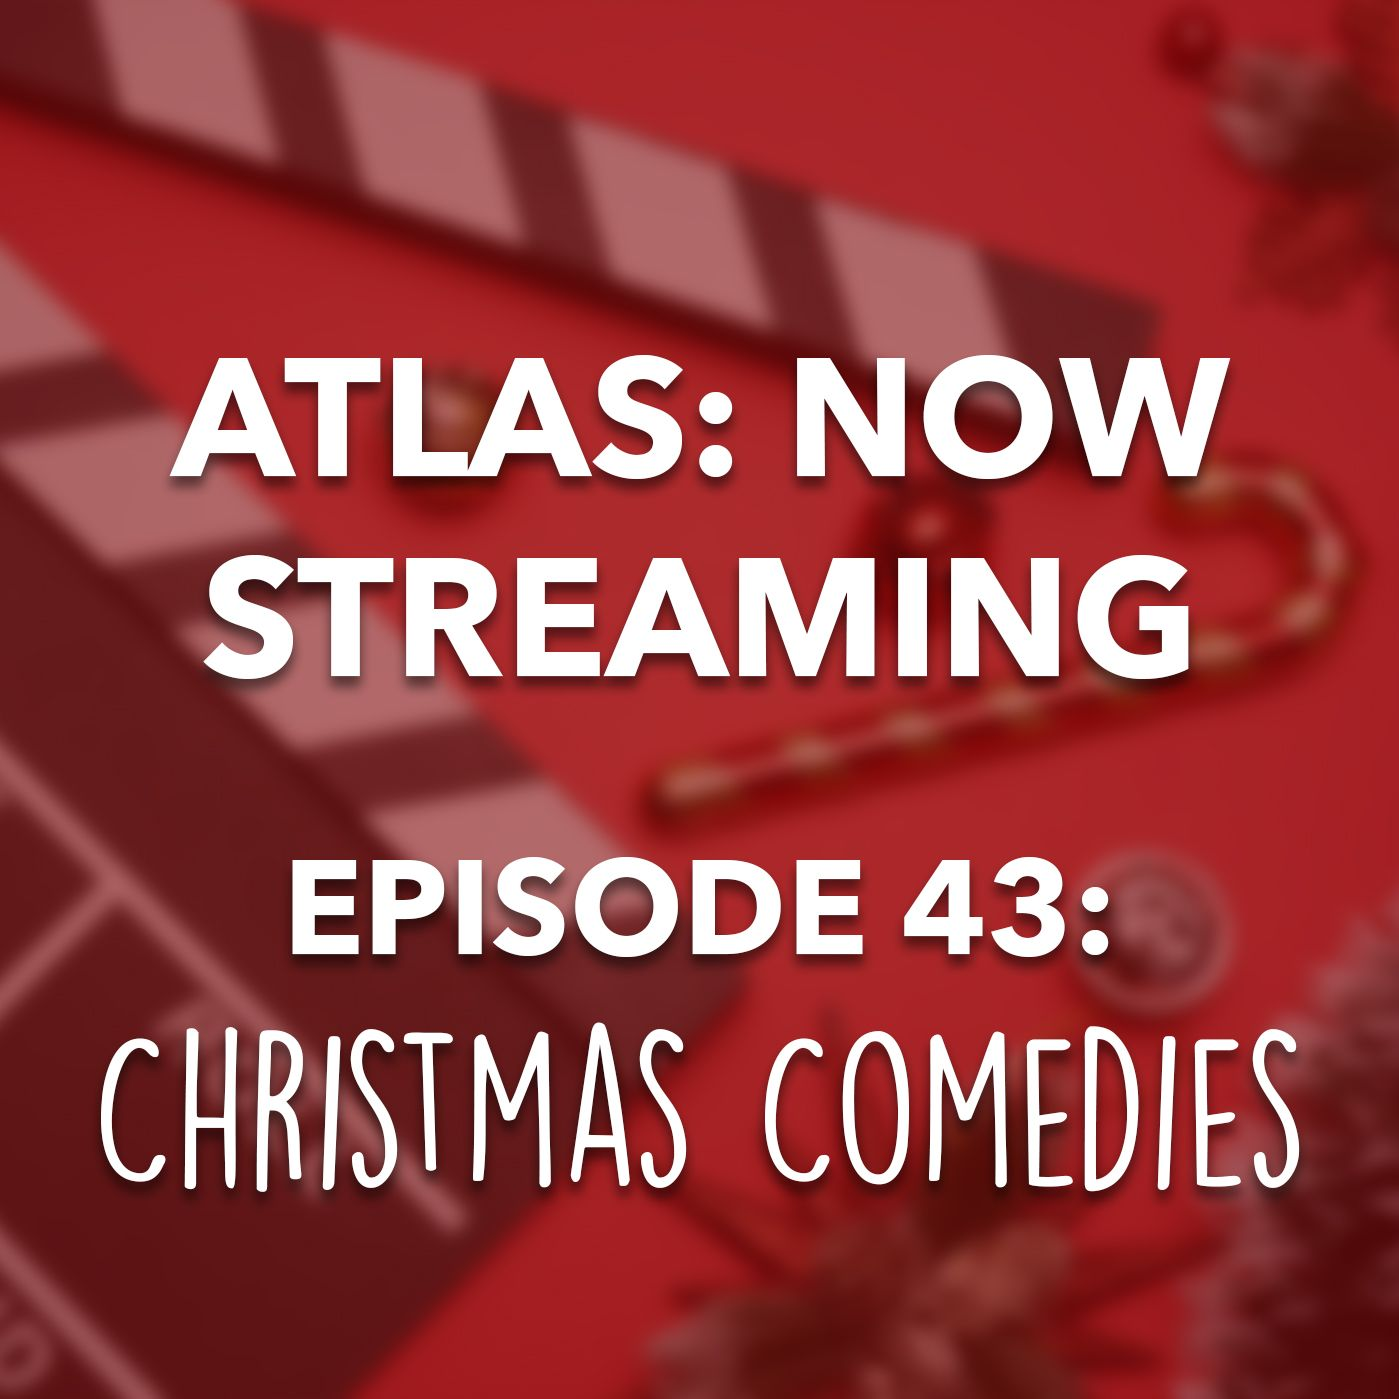 Christmas Comedies - Atlas: Now Streaming 43